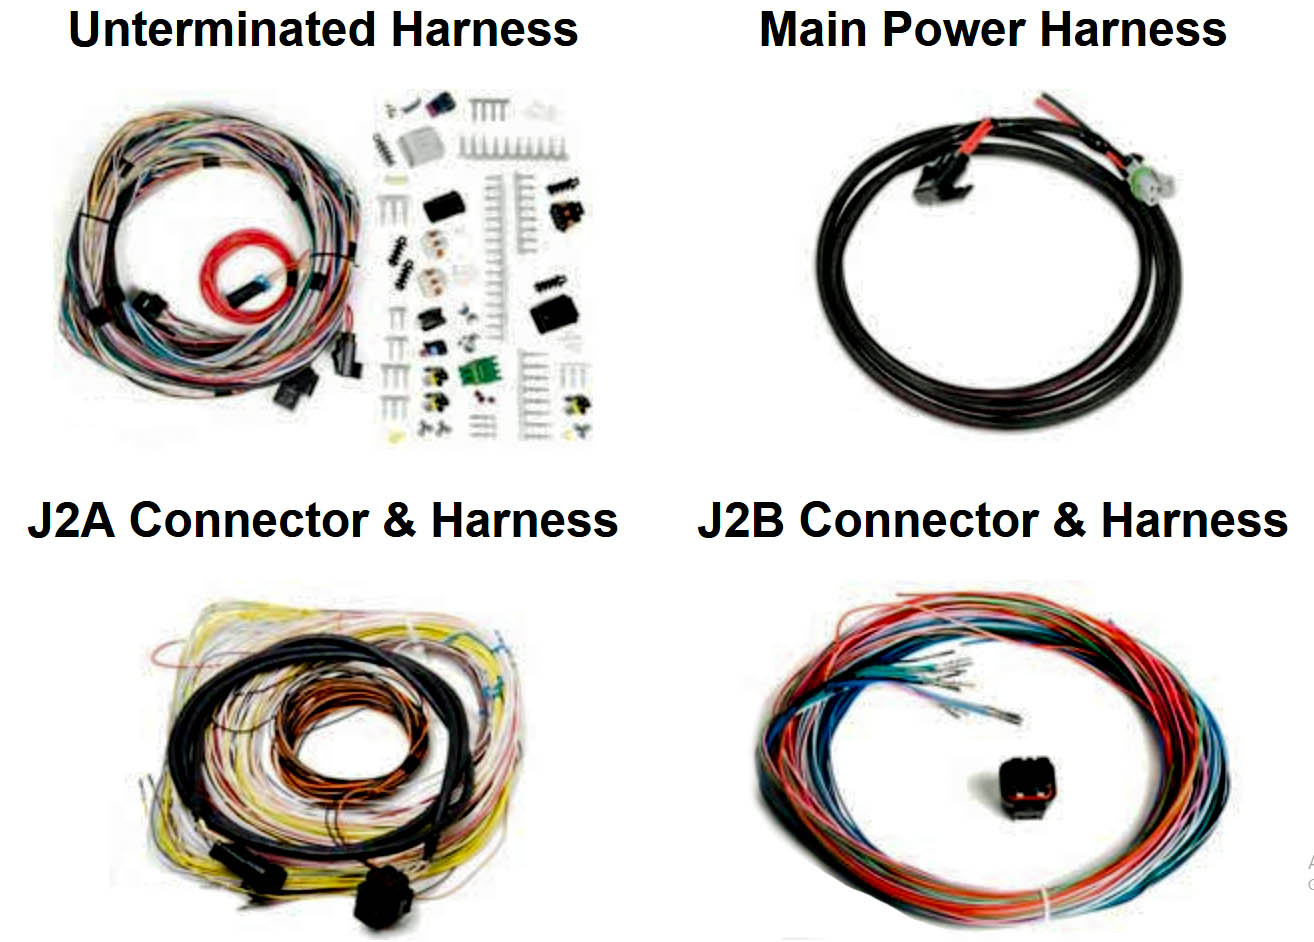 MPS Wiring Harness for Holley EFI ECU on abs wiring harness, airbag wiring harness, ecm wiring harness, steering column wiring harness, injectors wiring harness,